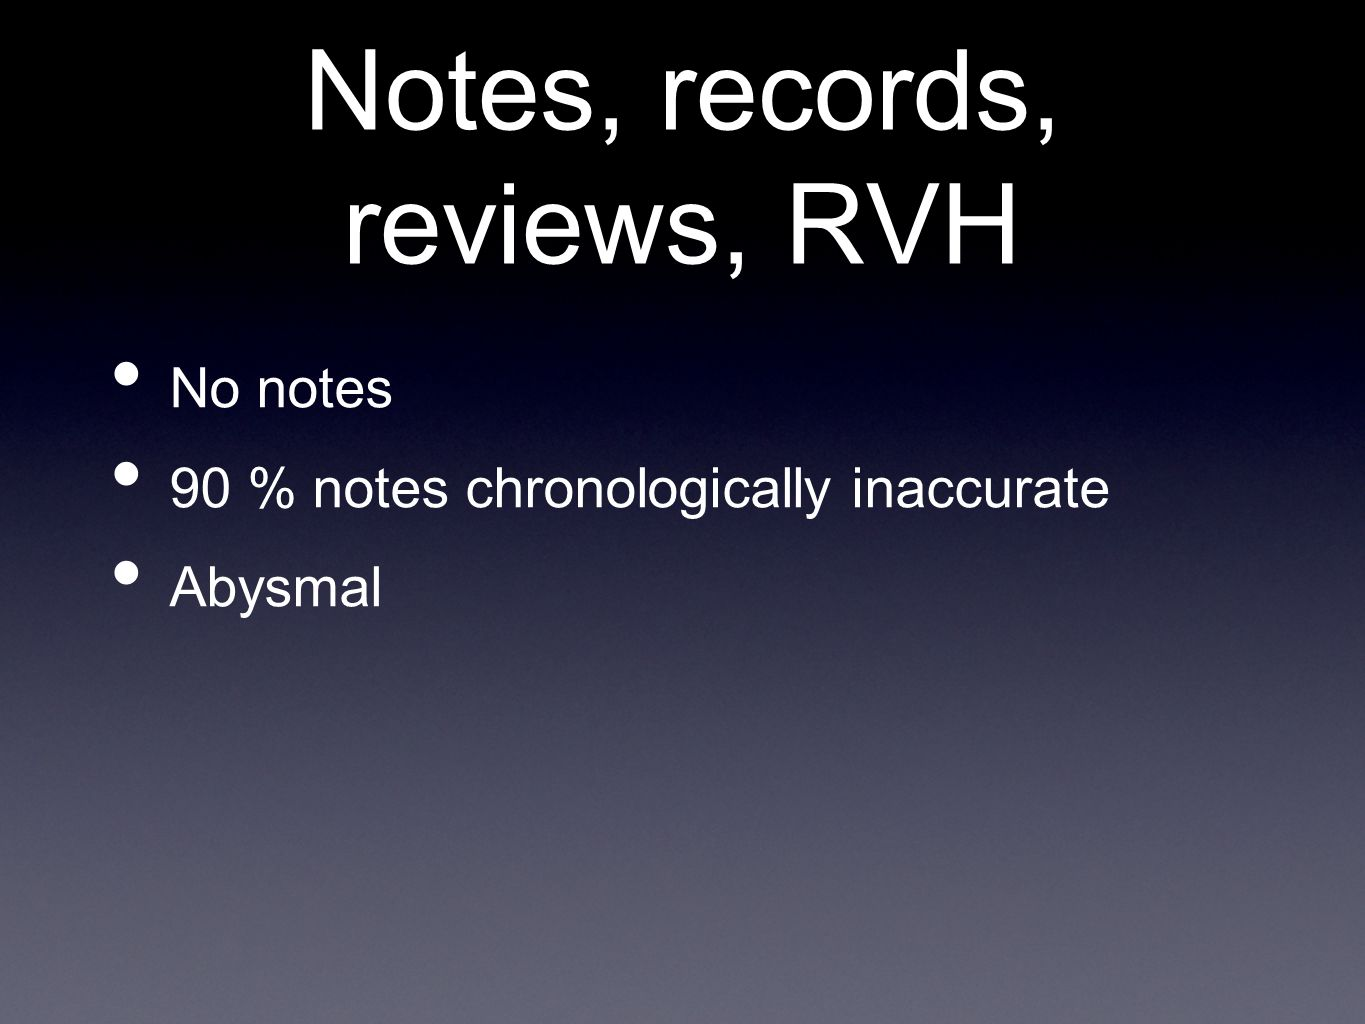 Notes, records, reviews, RVH